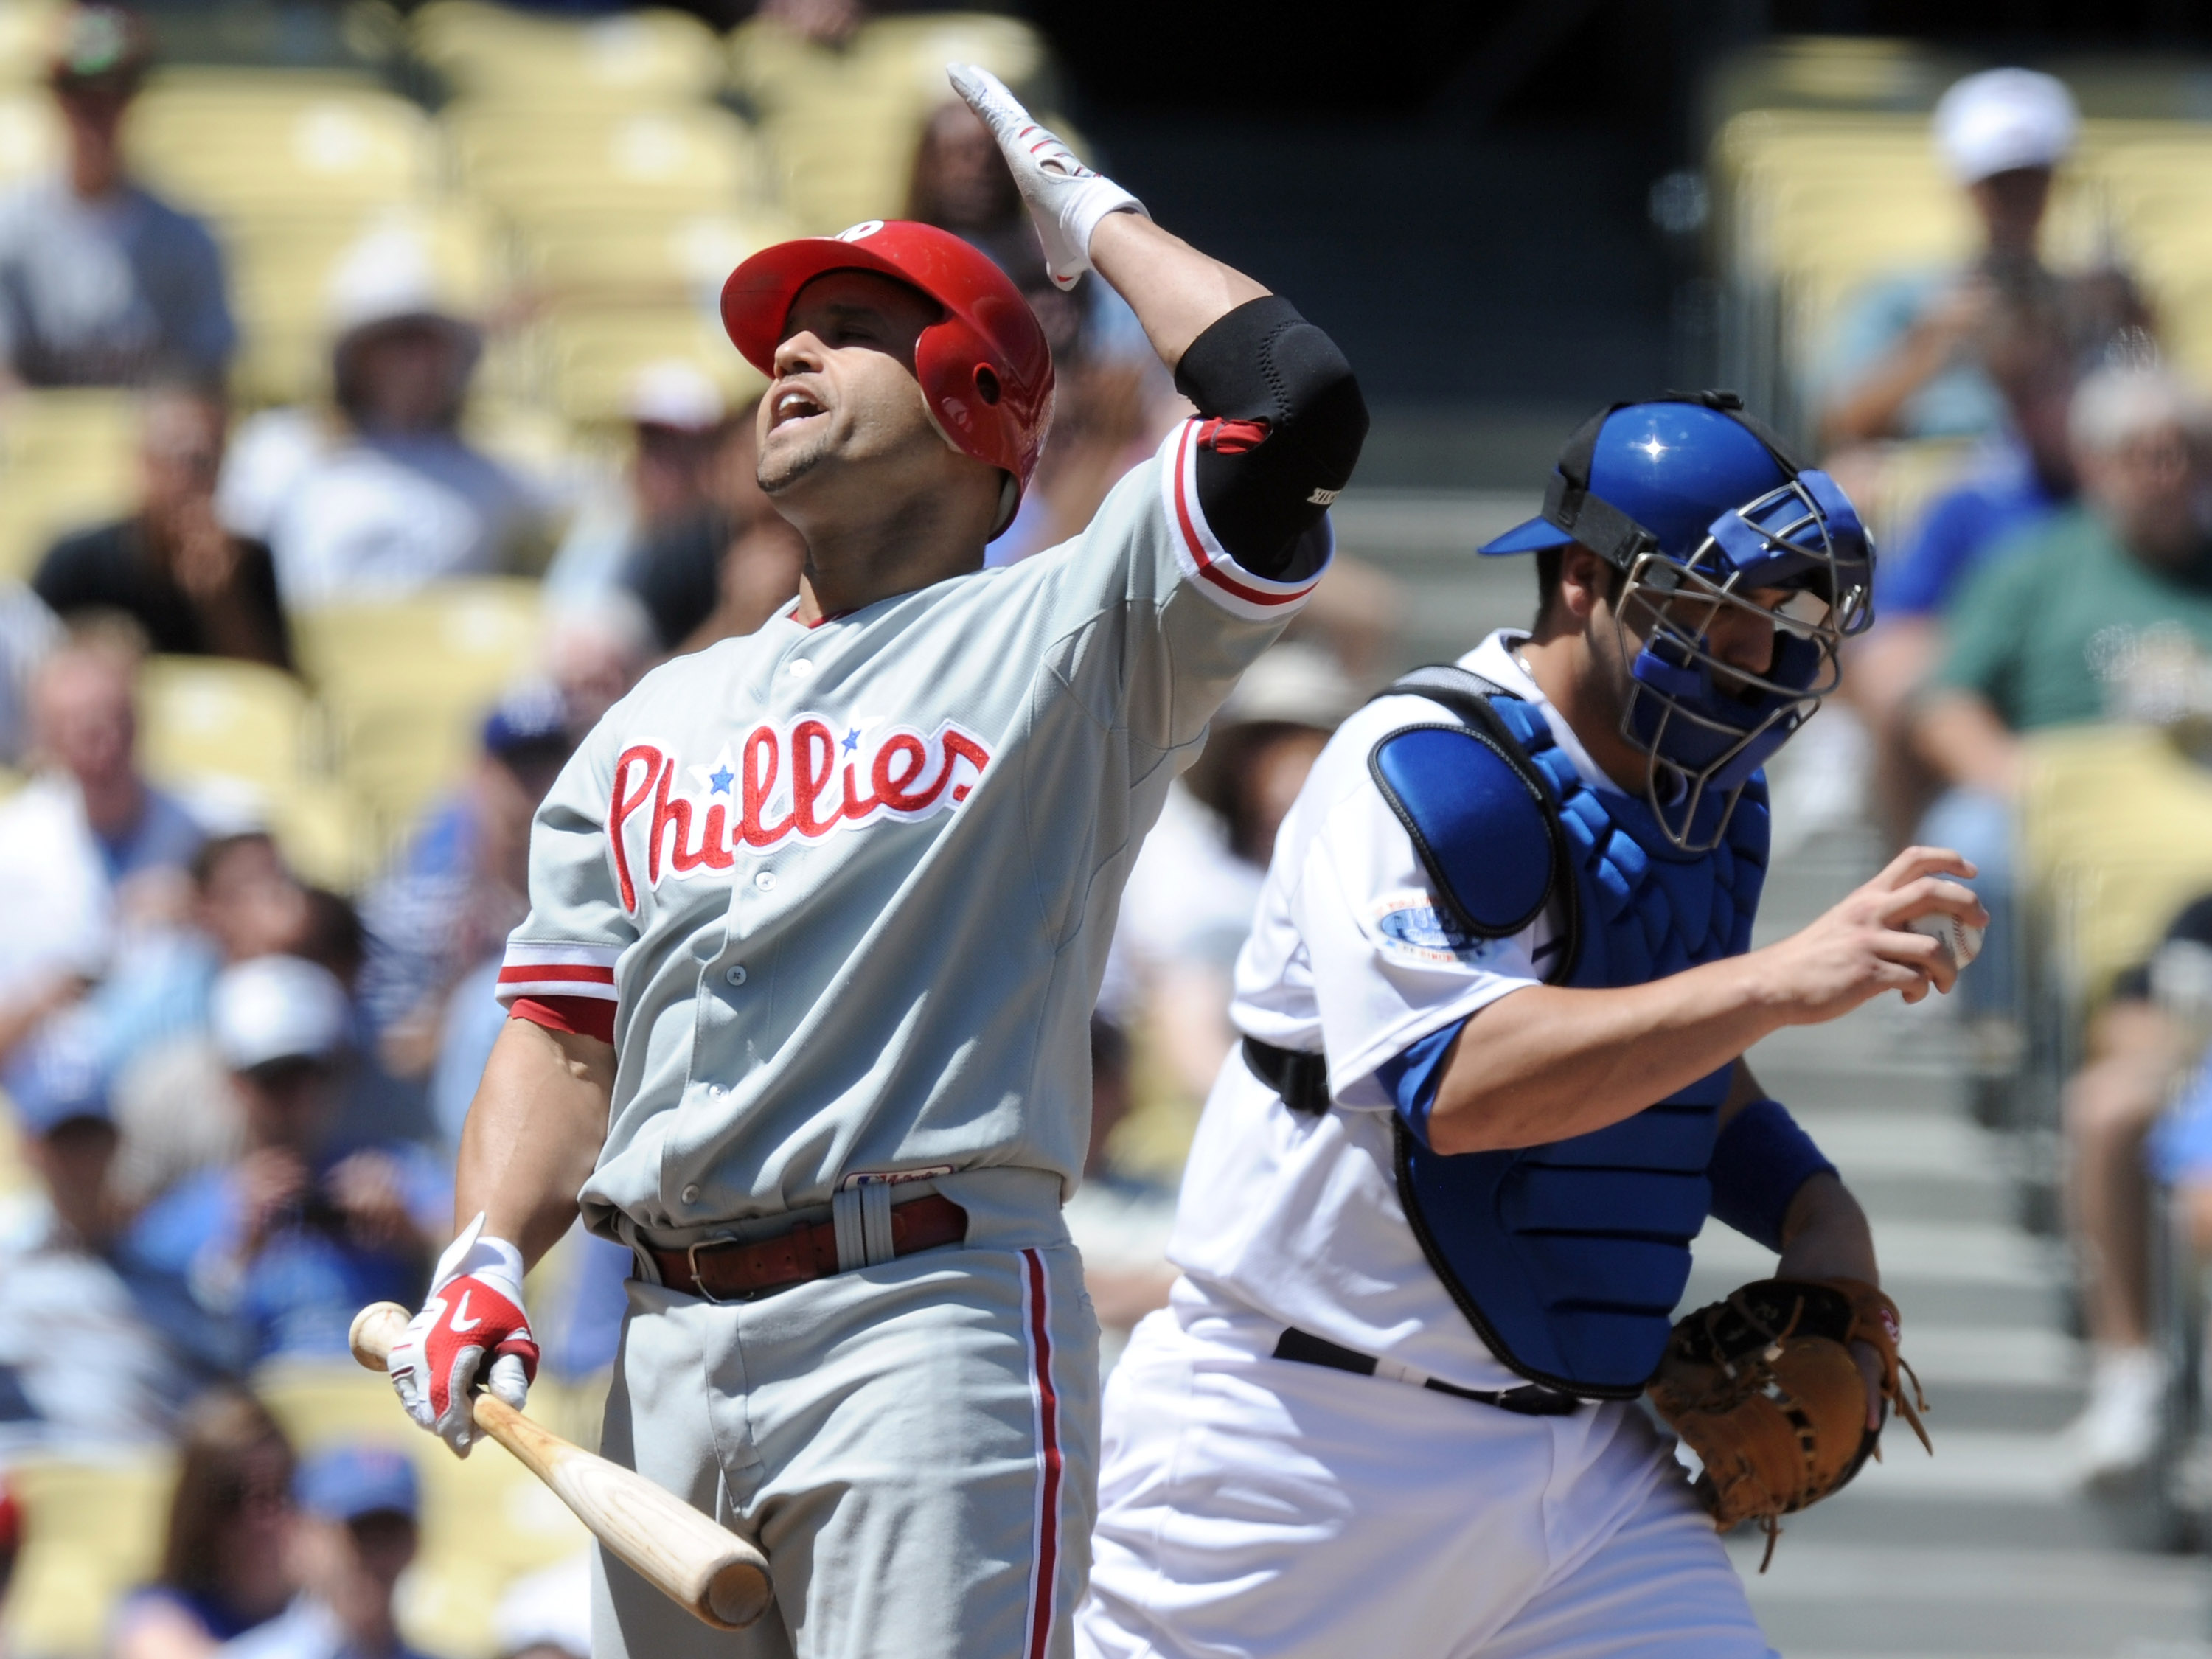 Phillies 2B Placido Polanco, upset after striking out.